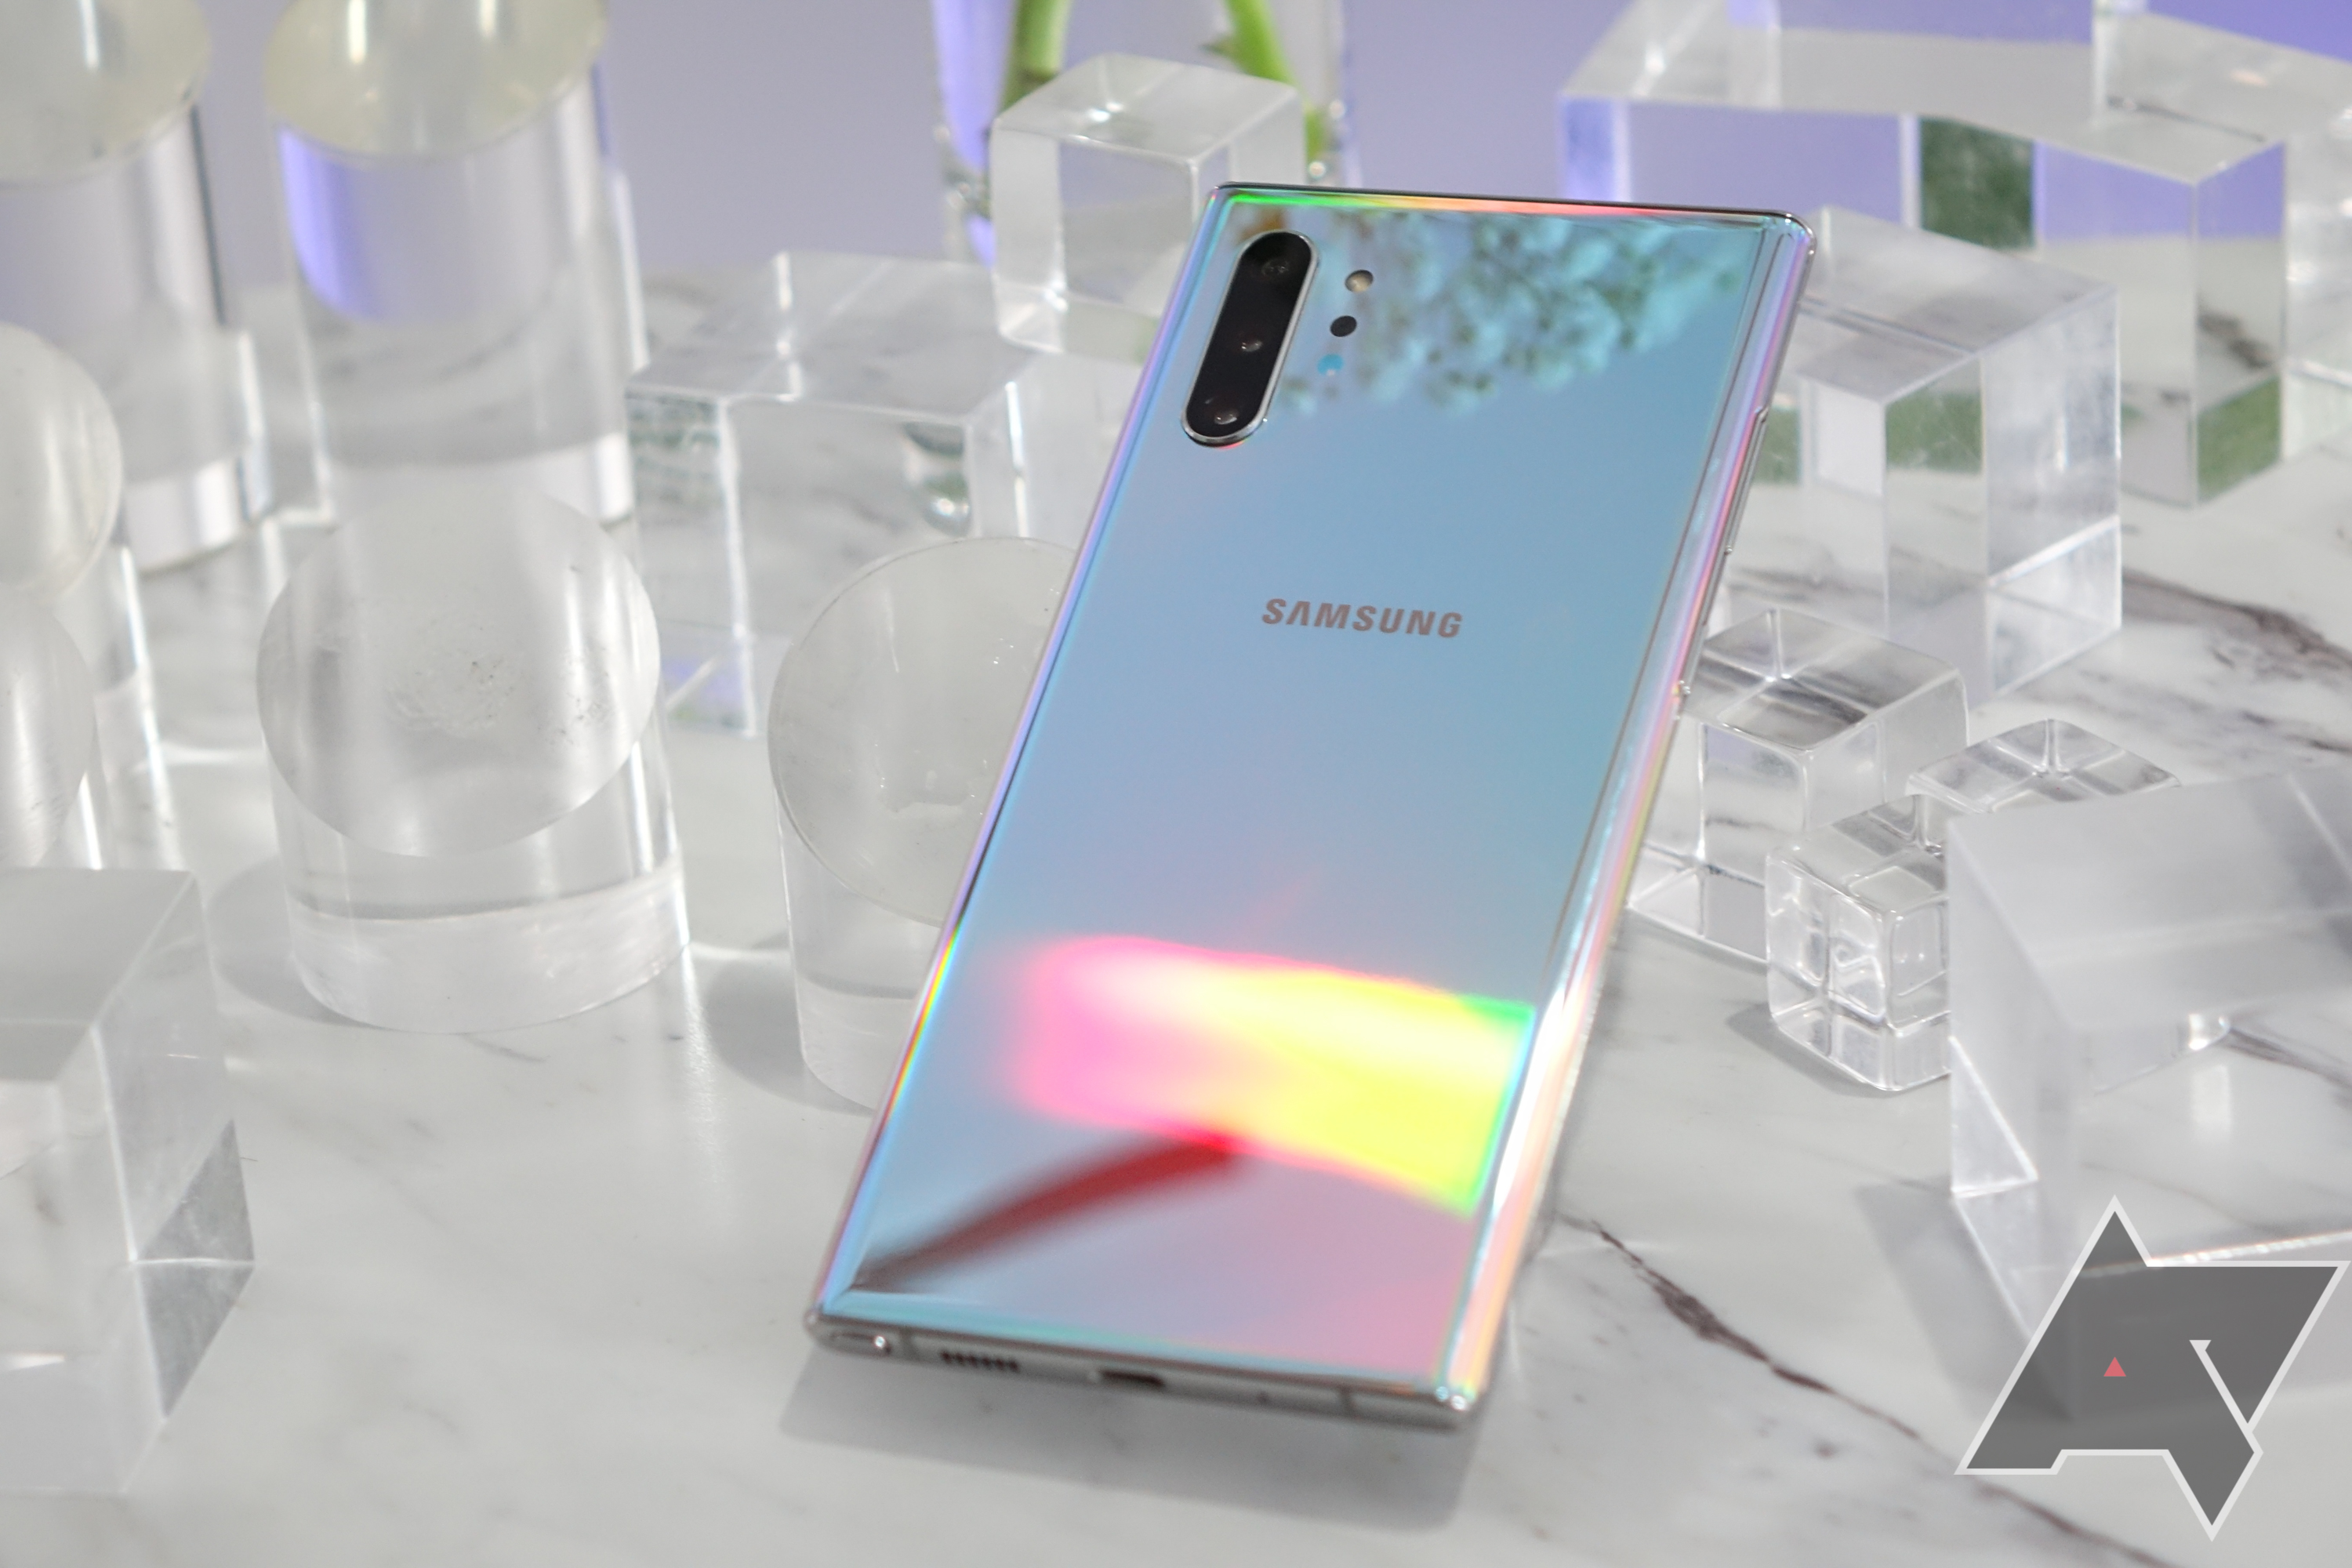 Samsung Galaxy Note10+ review: Reaching the limit of flagship